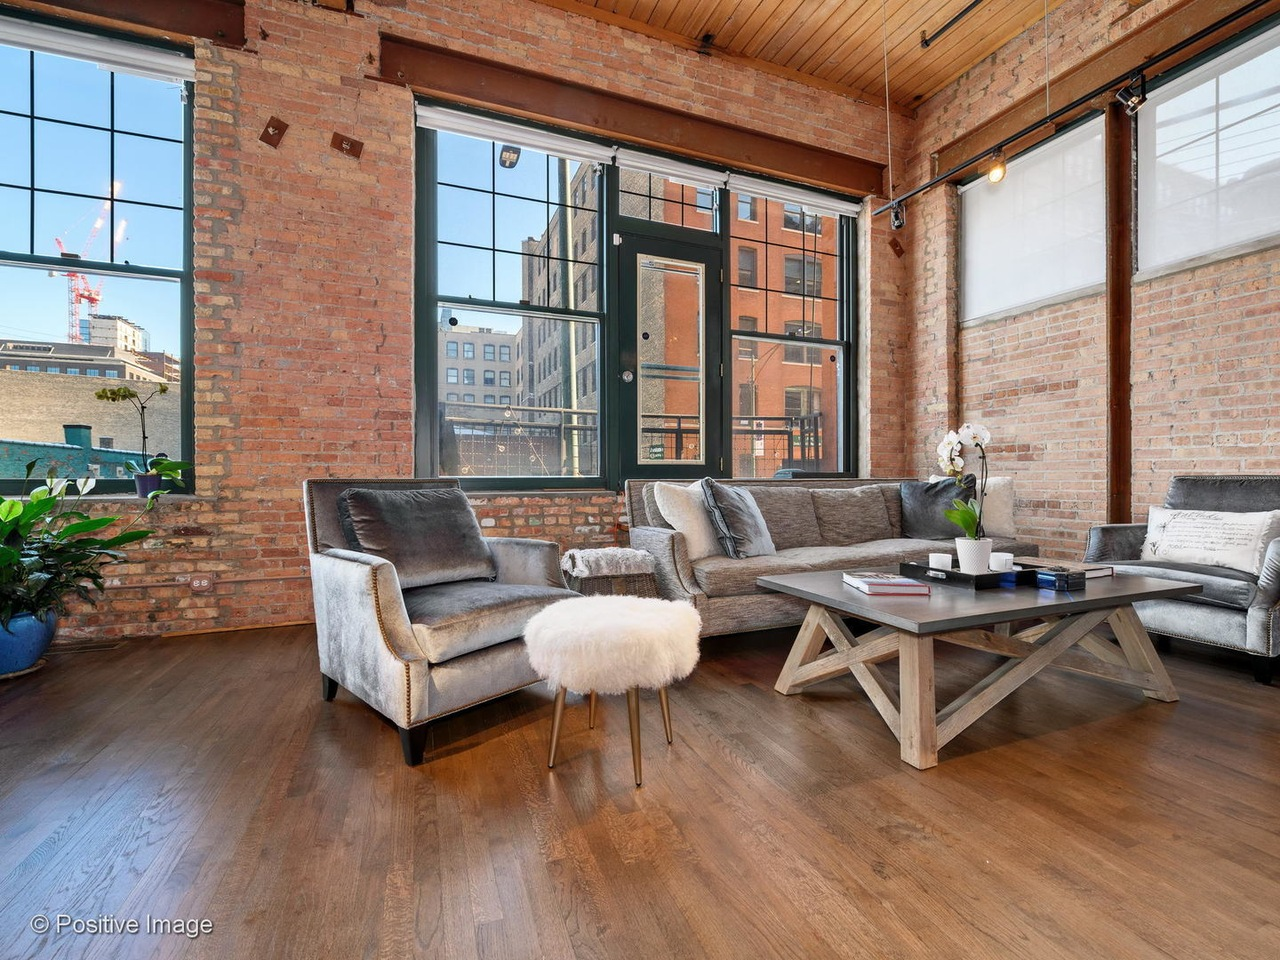 A lofted living room with brick walls and a sofa, chairs, and coffee table in front of oversized warehouse style windows.